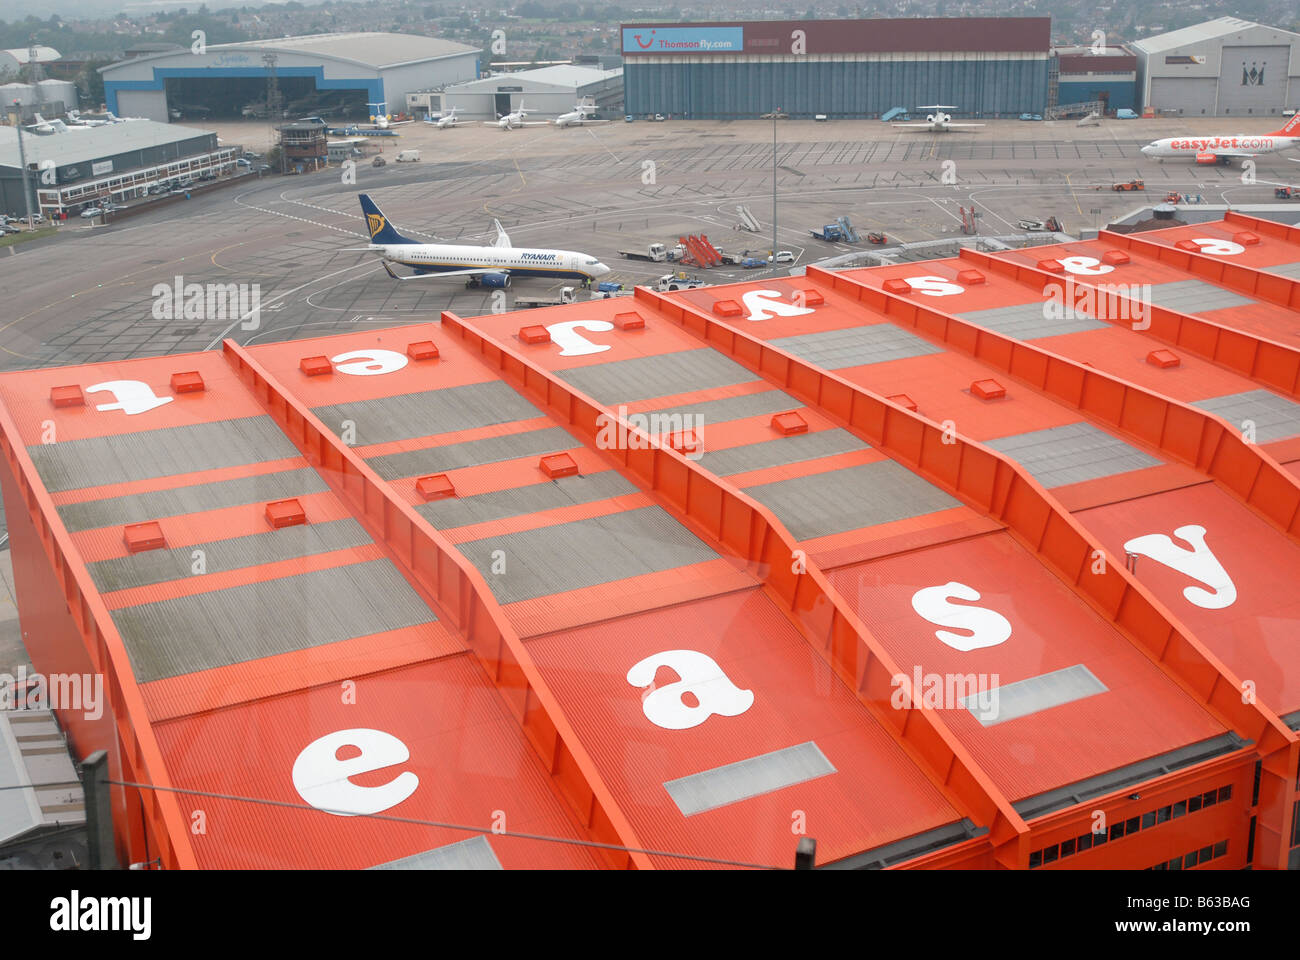 easyjet HQ at Luton Airport - Stock Image